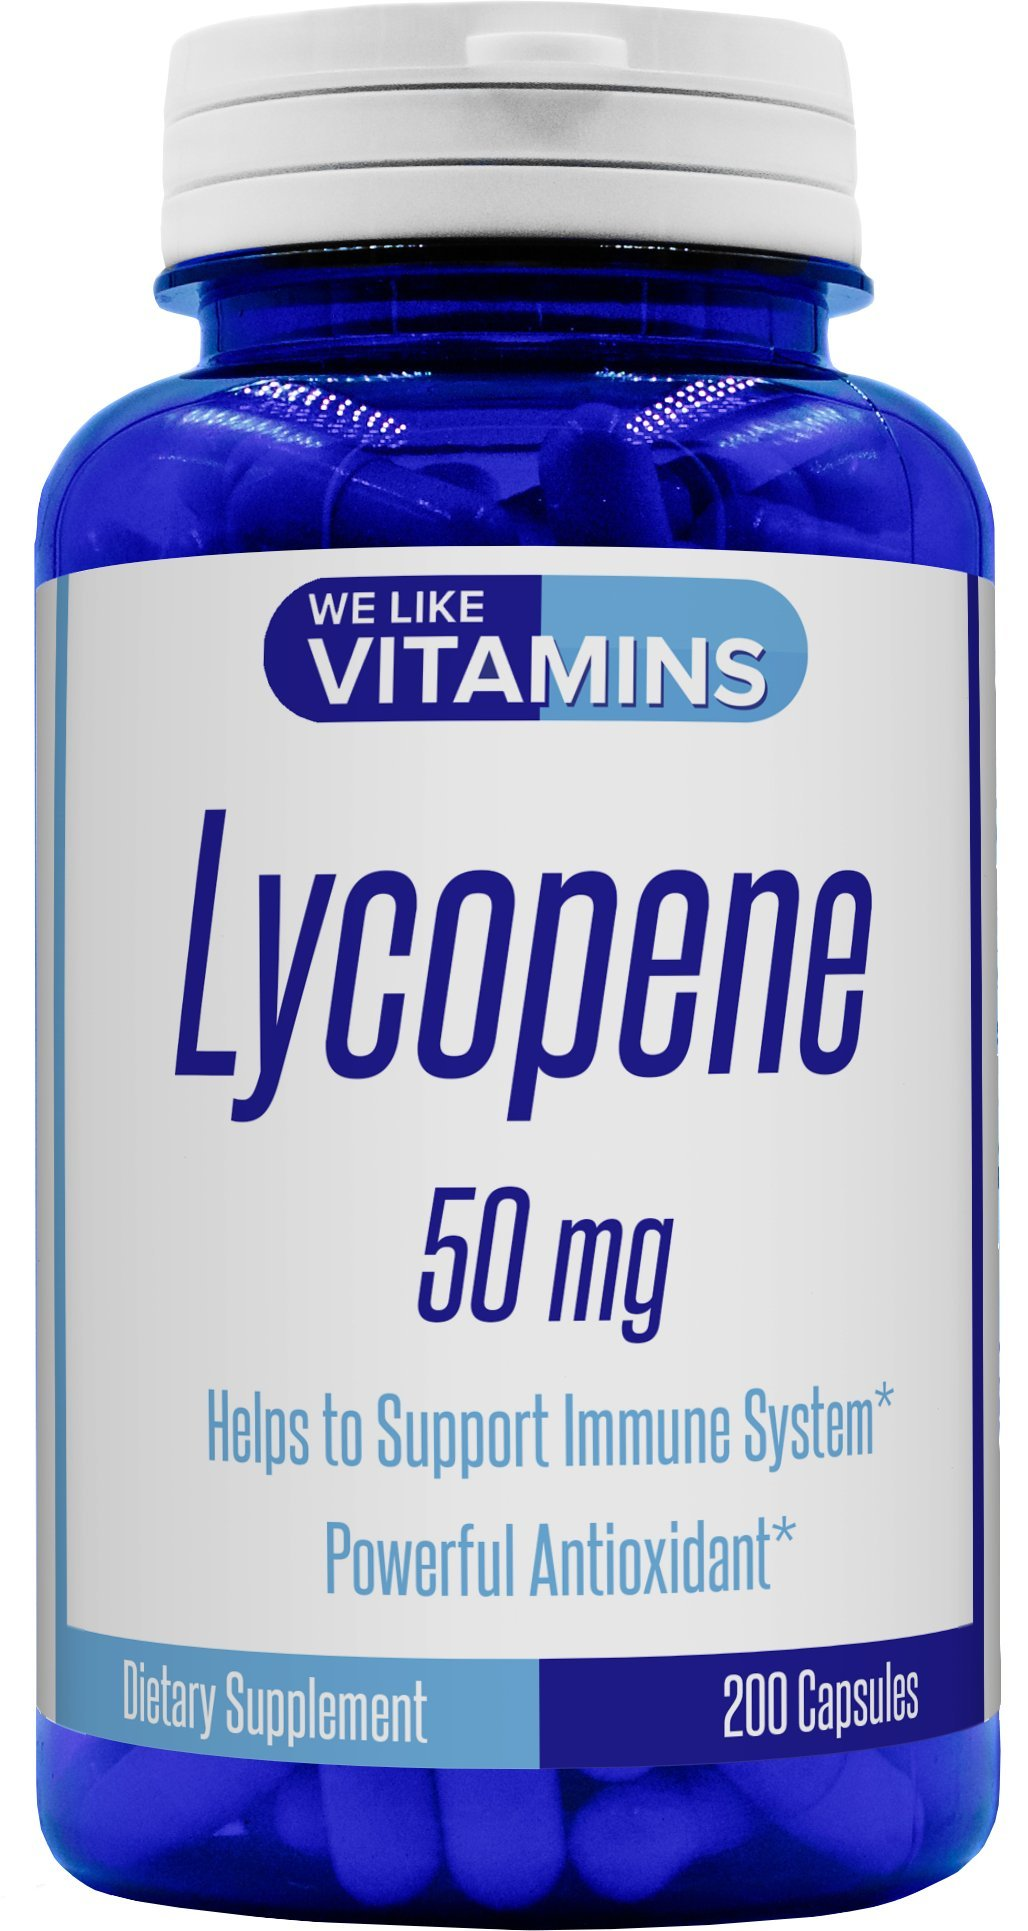 Lycopene 50mg 200 Capsules (Non GMO & Gluten Free) - Lycopene Supplement - Super Antioxidant which Helps Support Immune System and Prostate Health by We Like Vitamins